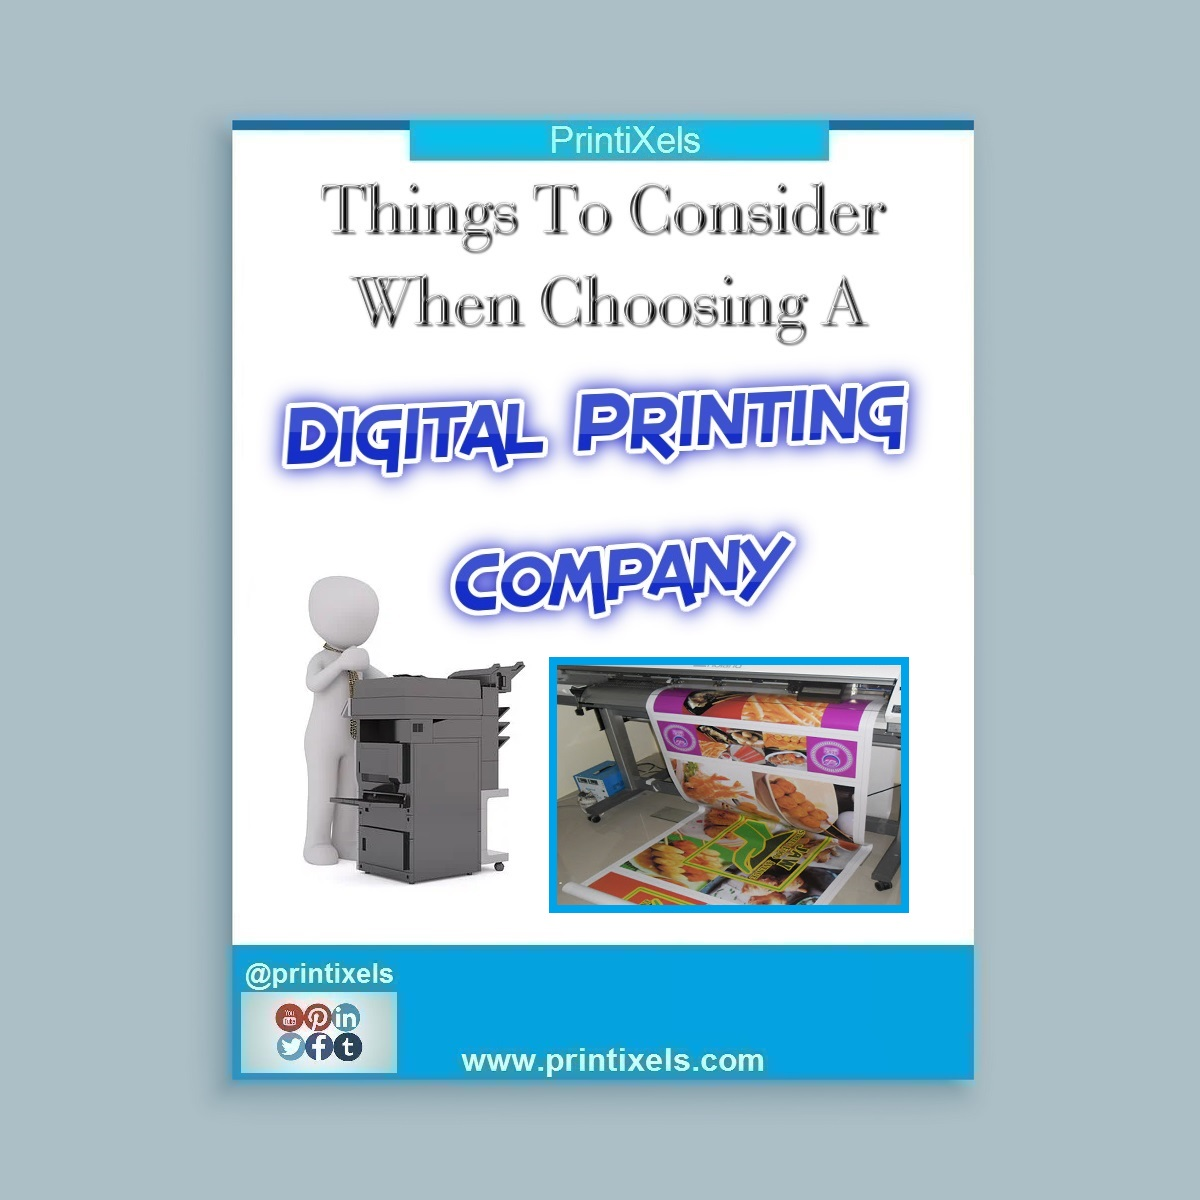 Things To Consider When Choosing A Digital Printing Company